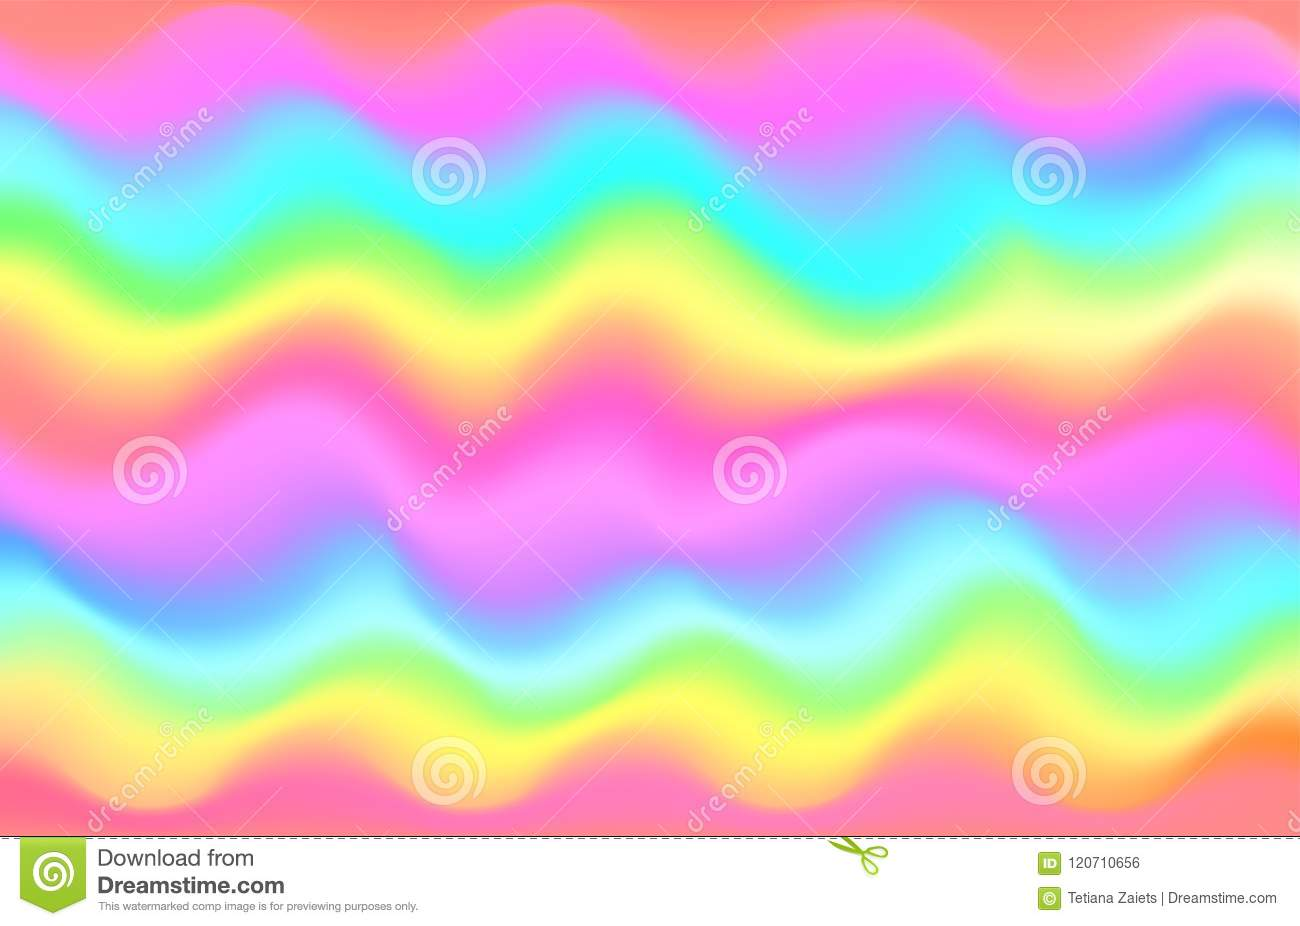 unicorn rainbow wave background mermaid galaxy pattern pastel pink blue green yellow violet purple color vector illustration